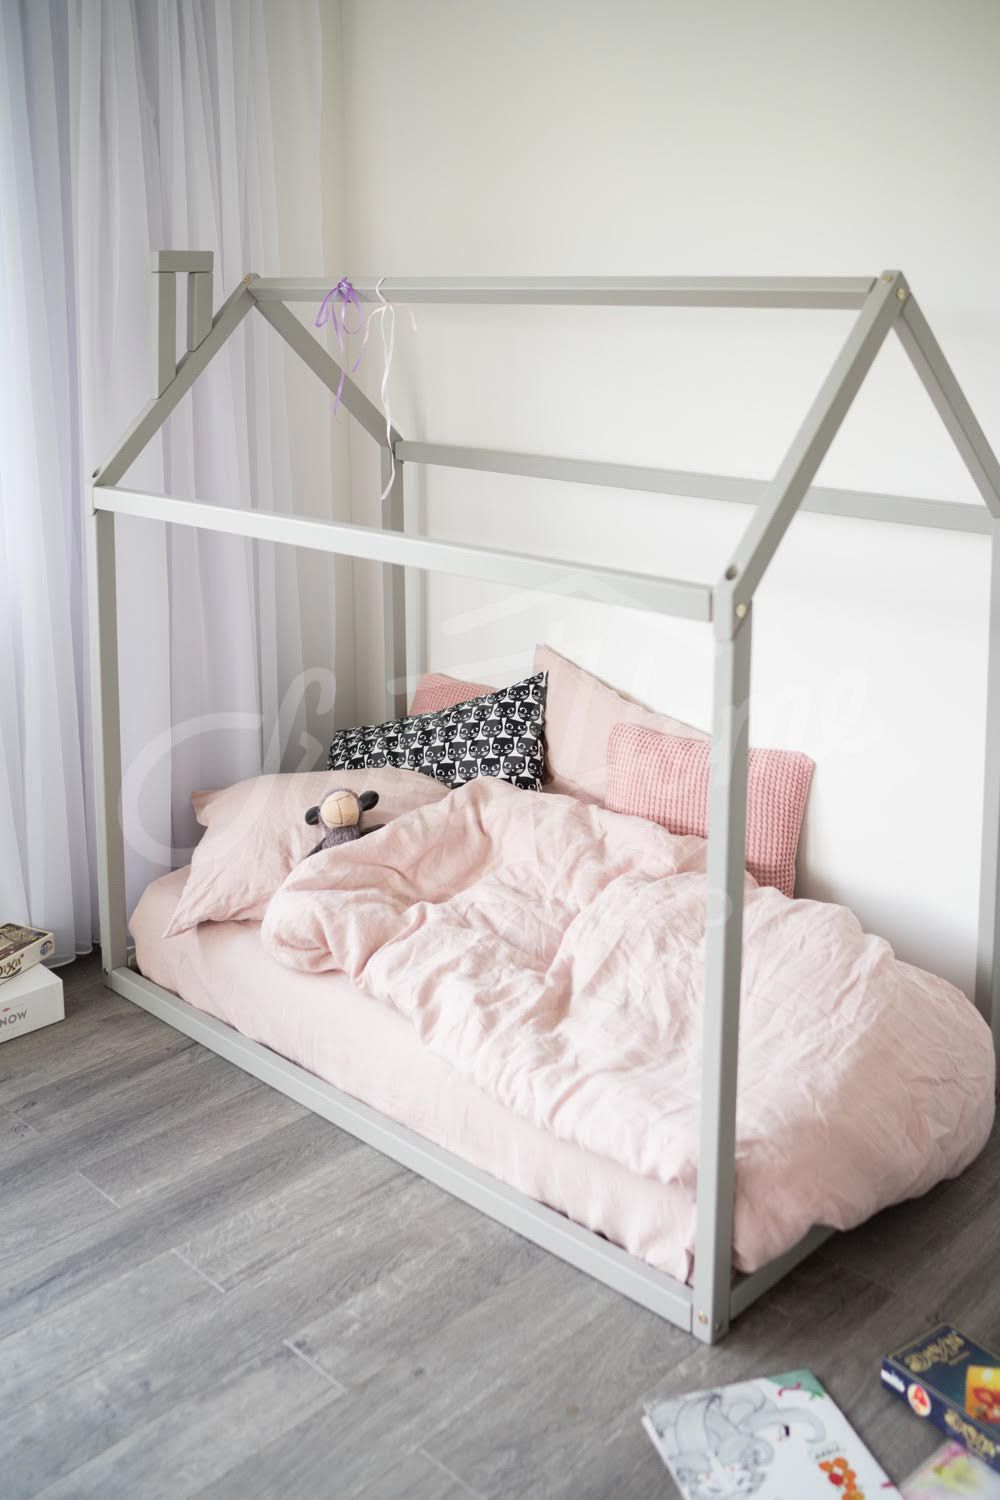 Toddler Bed Play House Bed Frame Children Bed Bunk Bed Home Etsy House Frame Bed House Beds Toddler Bed